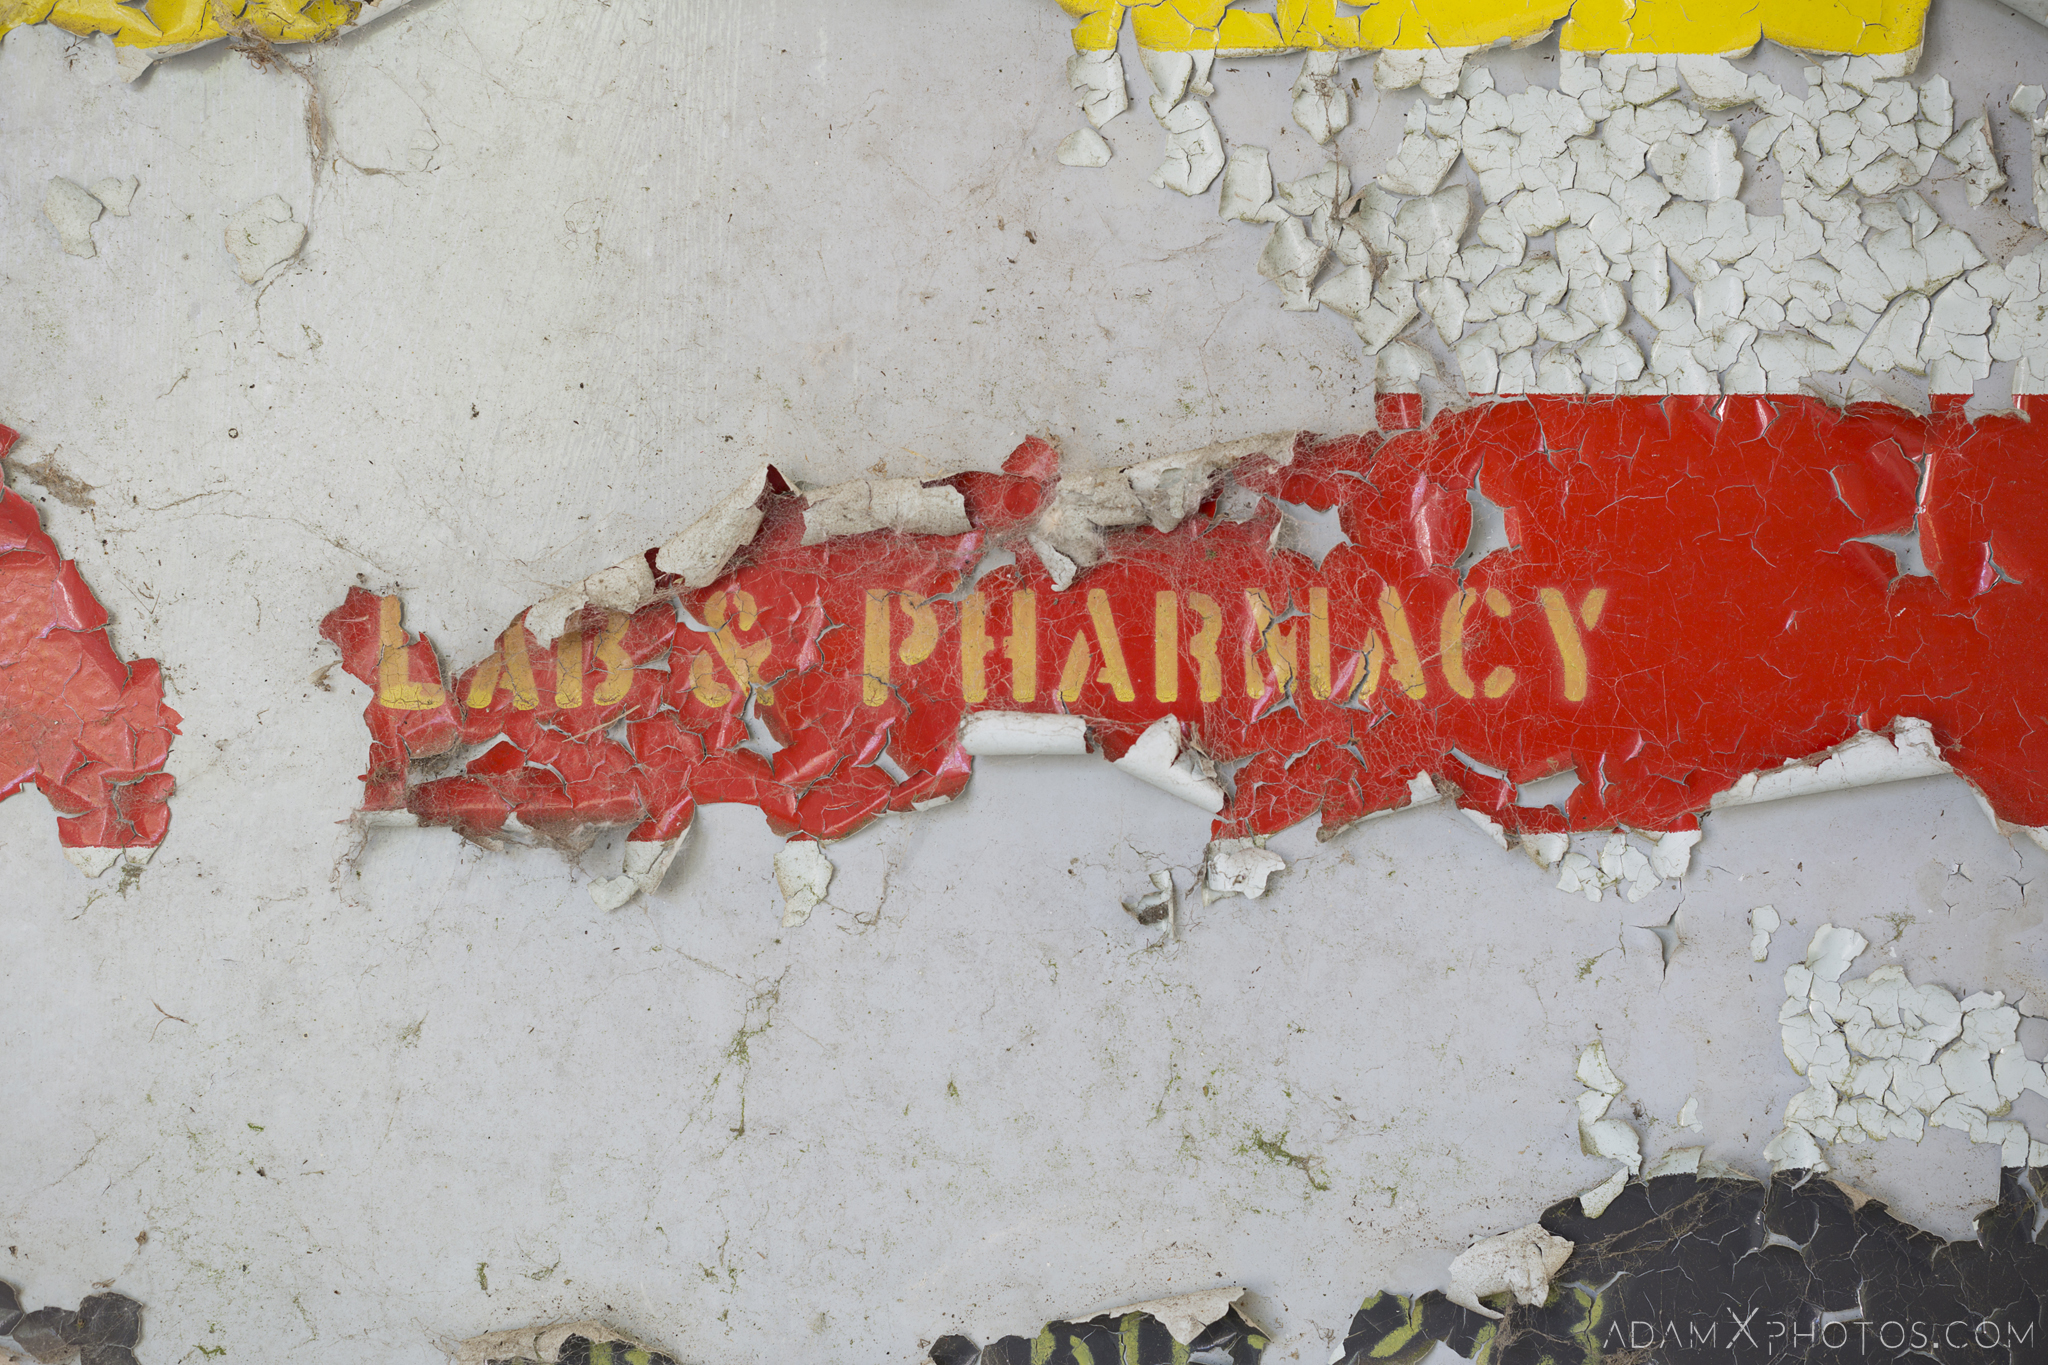 Lab & Pharmacy peeling paint sign Nocton Hall RAF Hospital Lincolnshire Adam X Urbex Urban Exploration Access 2018 Abandoned decay lost forgotten derelict location creepy haunting eerie